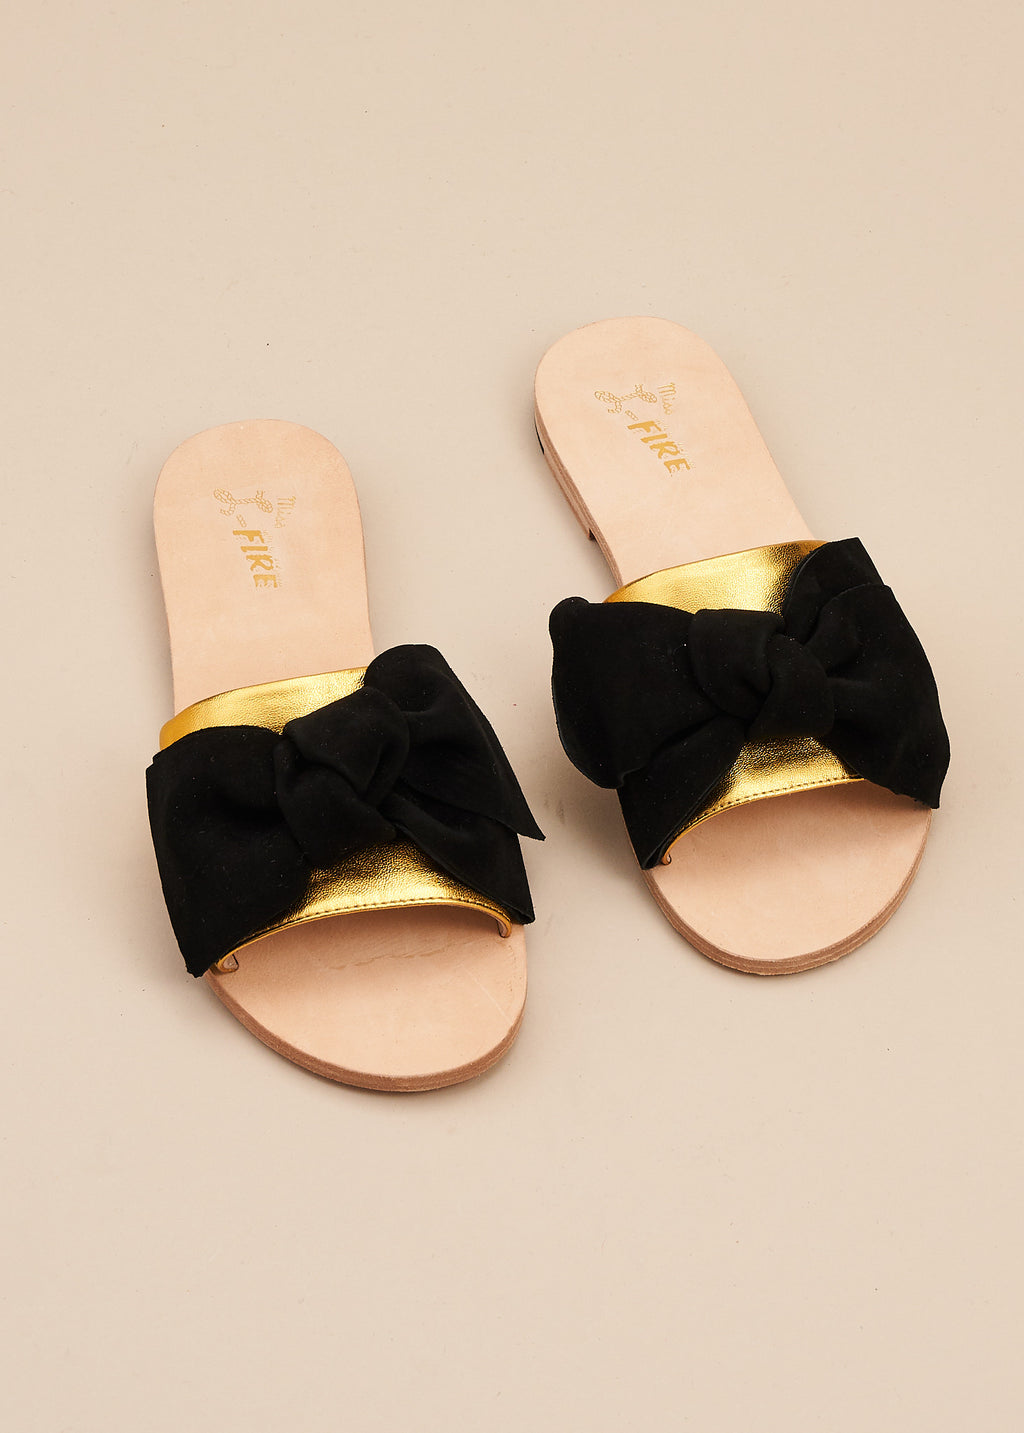 Serafina is a super cute slide with gold leather band and soft black suede bow. It is the perfect stay-at-home slide. All leather upper, insole and outsole, this is a little indoor luxury at an affordable price. By Miss L Fire.